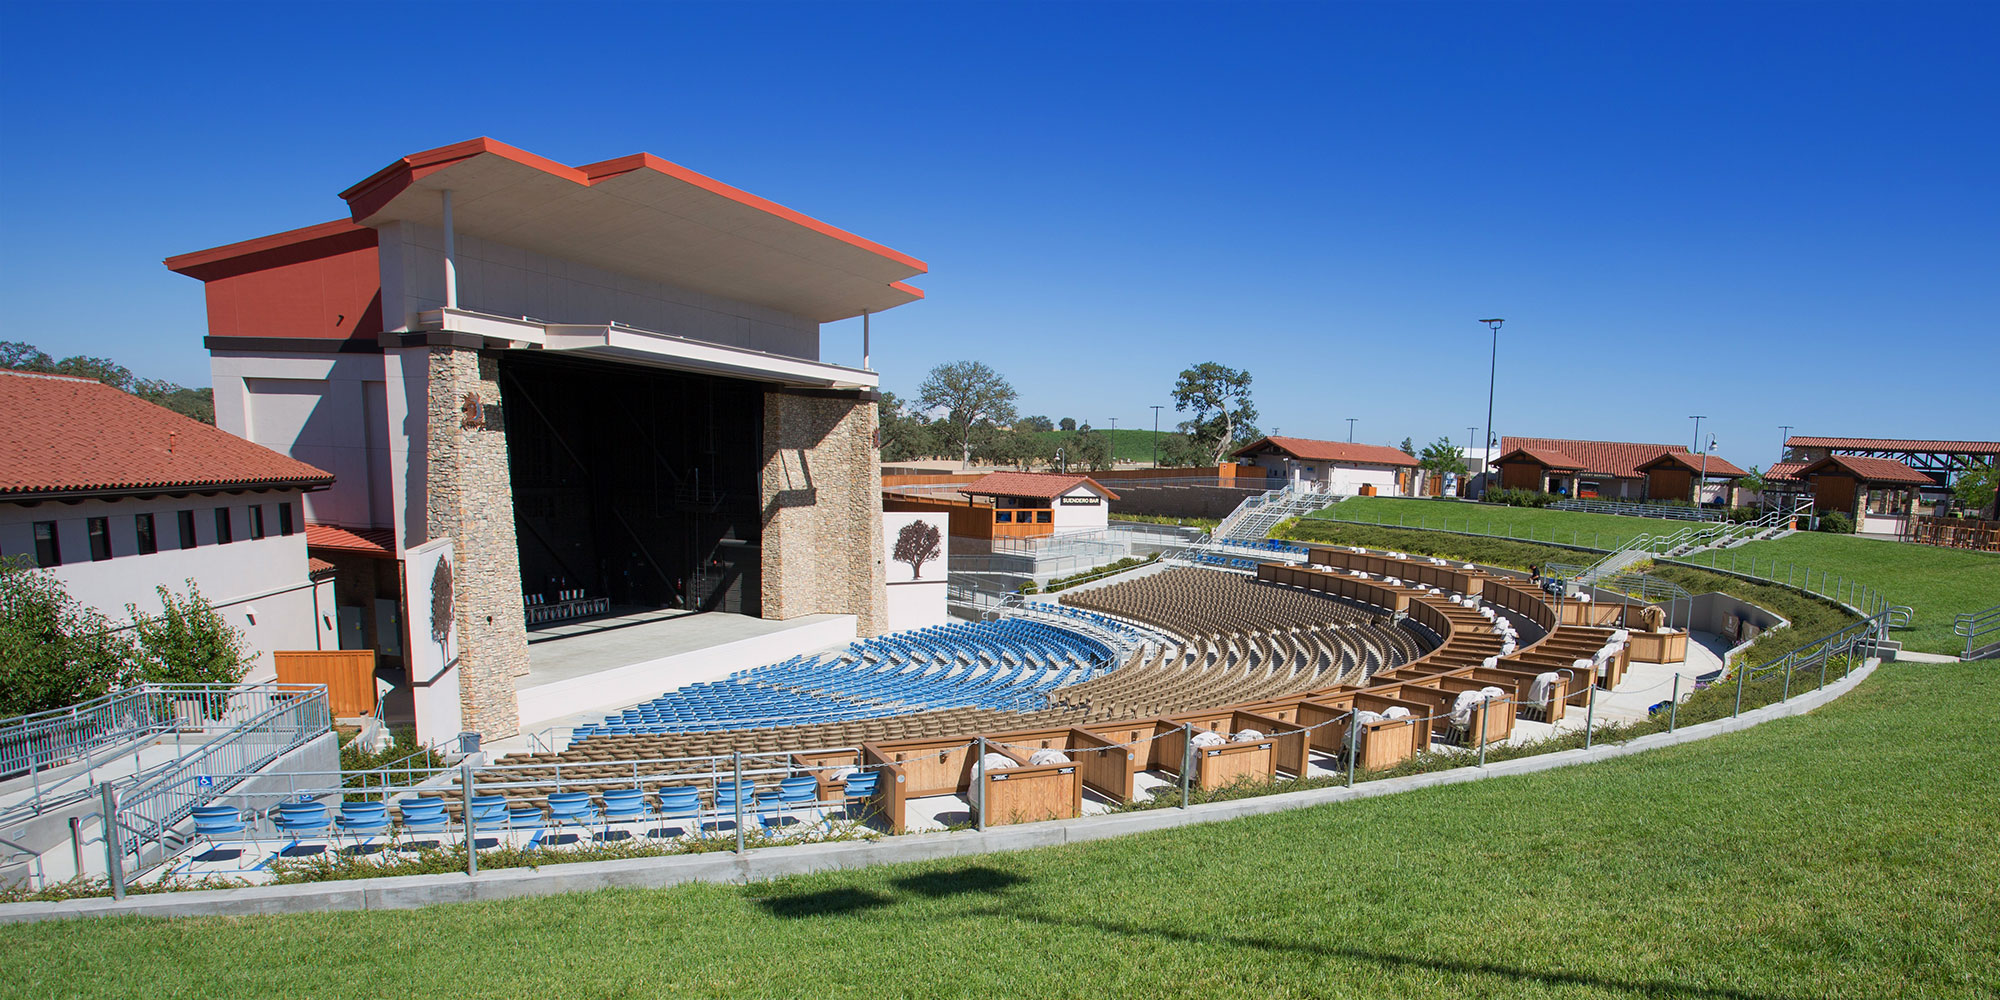 Paso Robles Amphitheater Building Contractor - Event Center Builder - JW Design and Construction